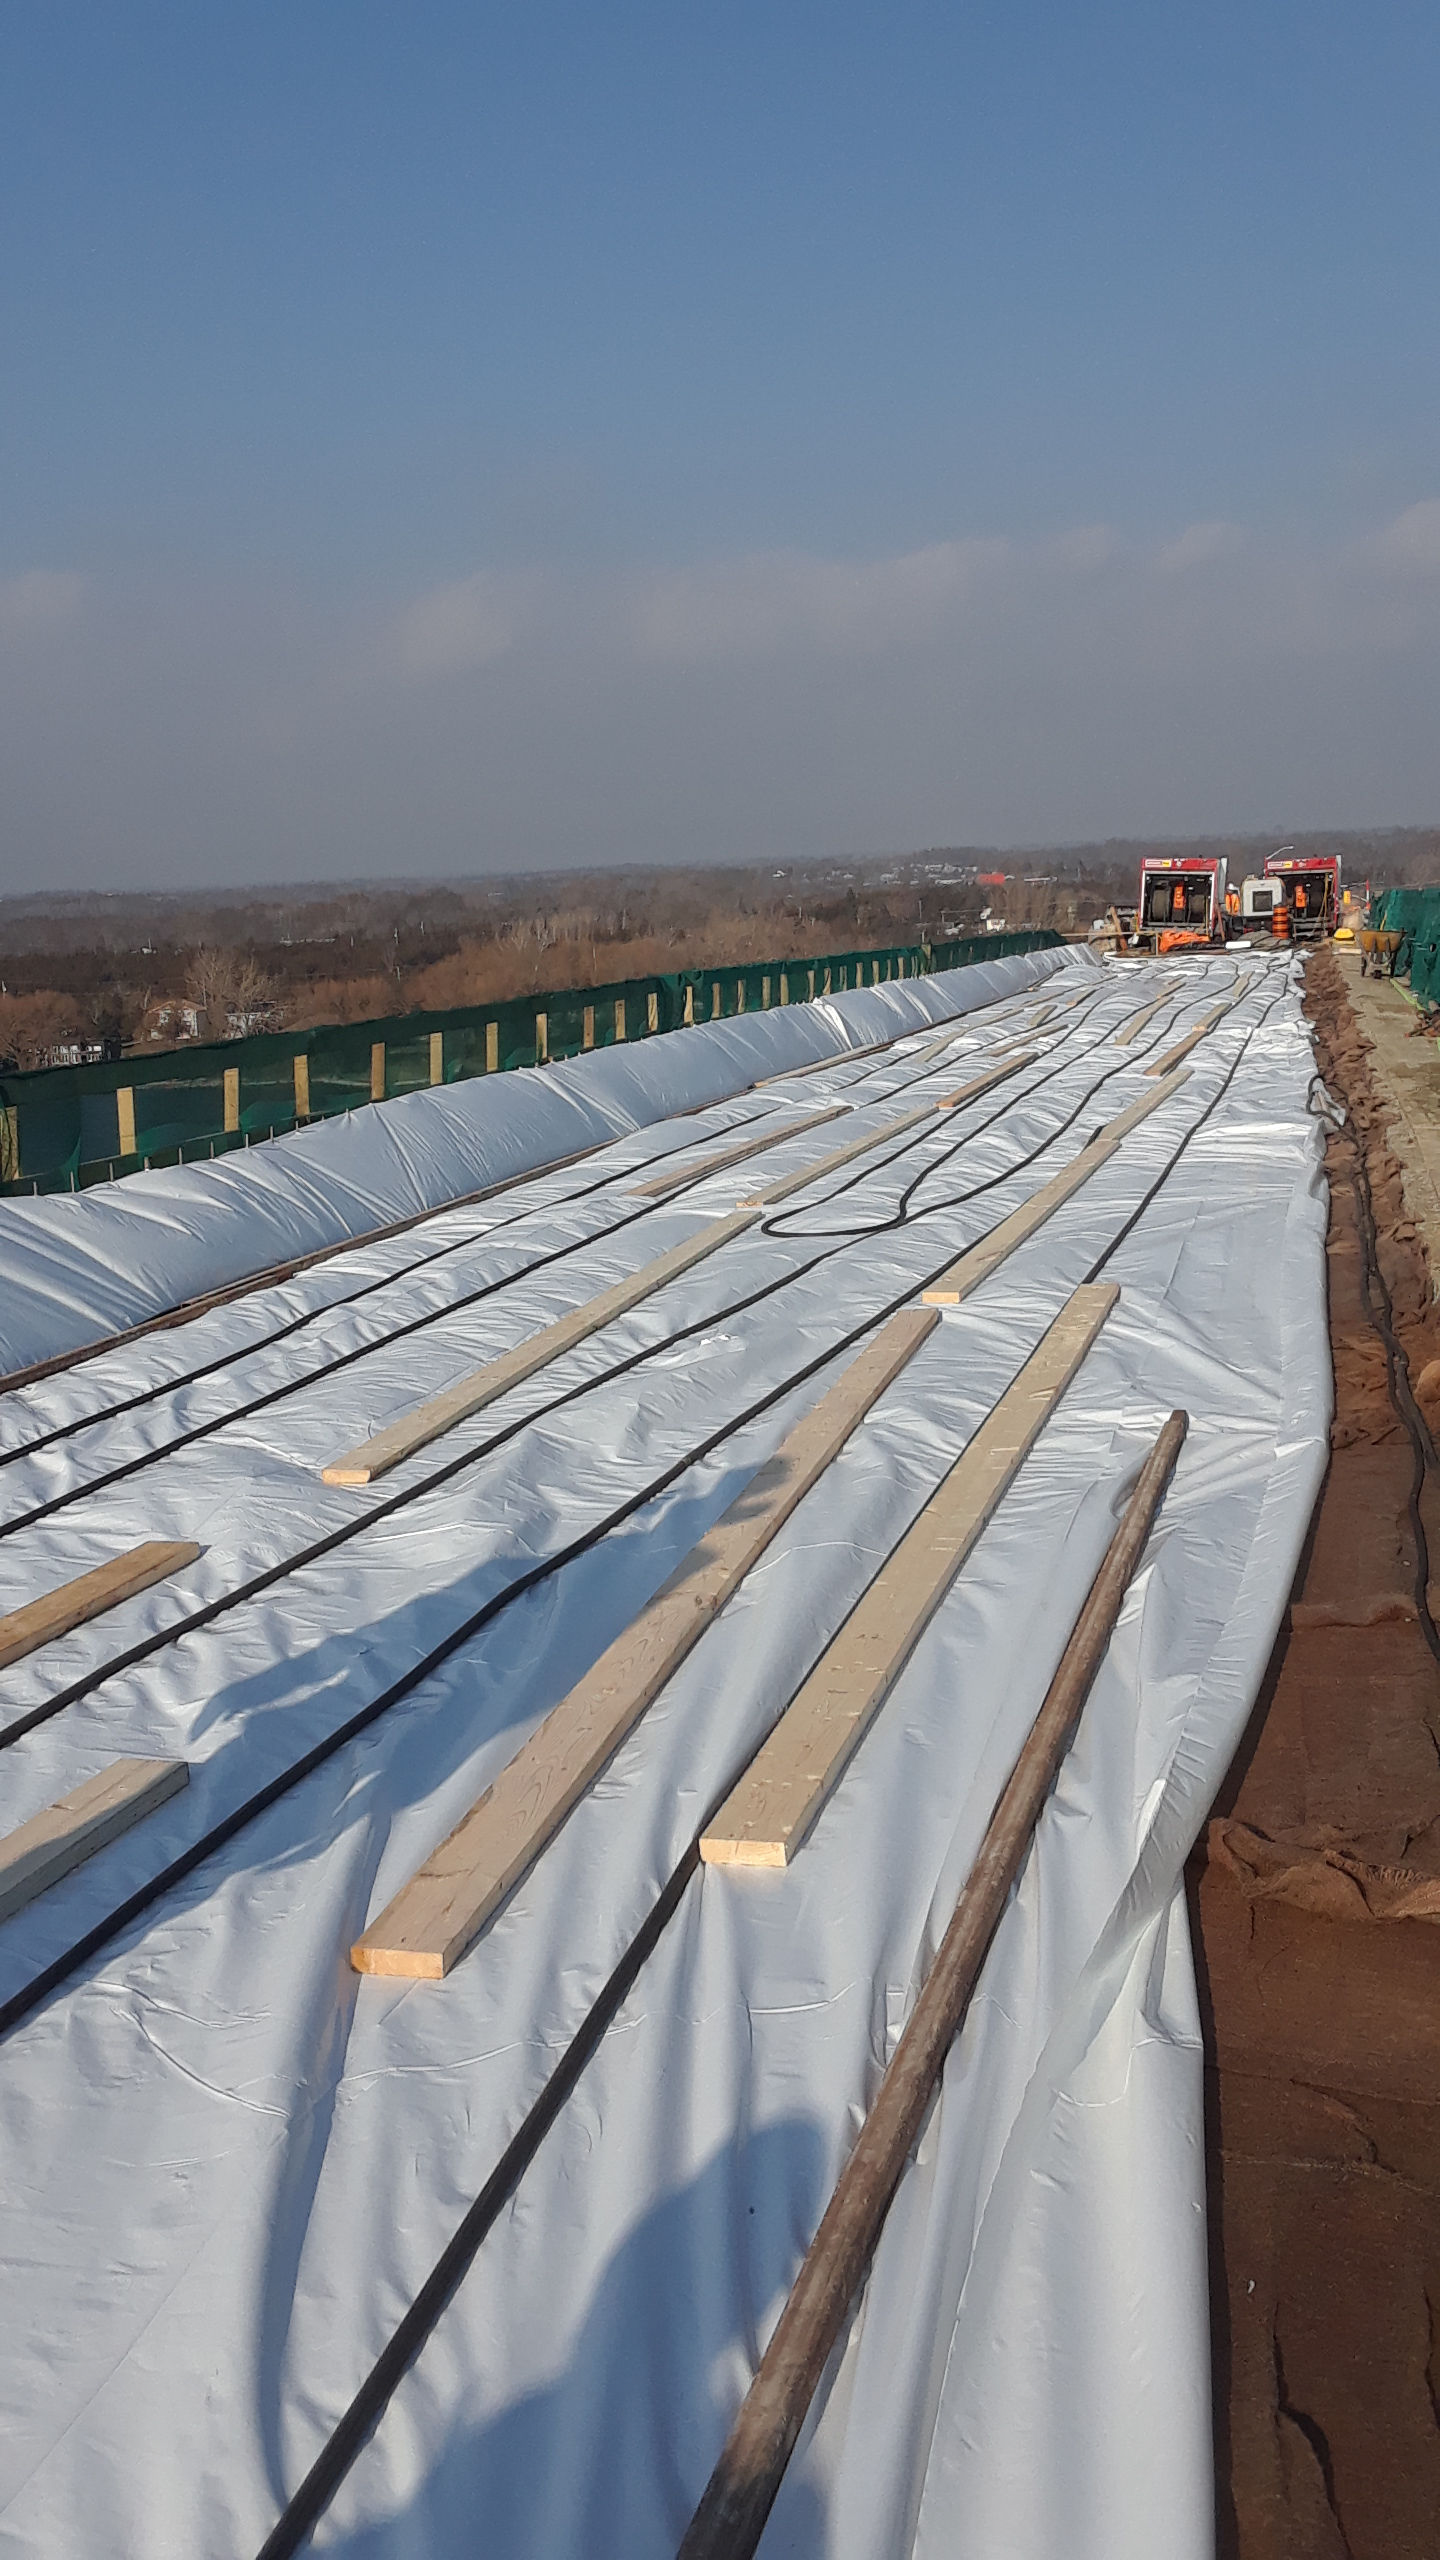 Newly placed deck covered by curing material and tarping, being heated by ground heaters